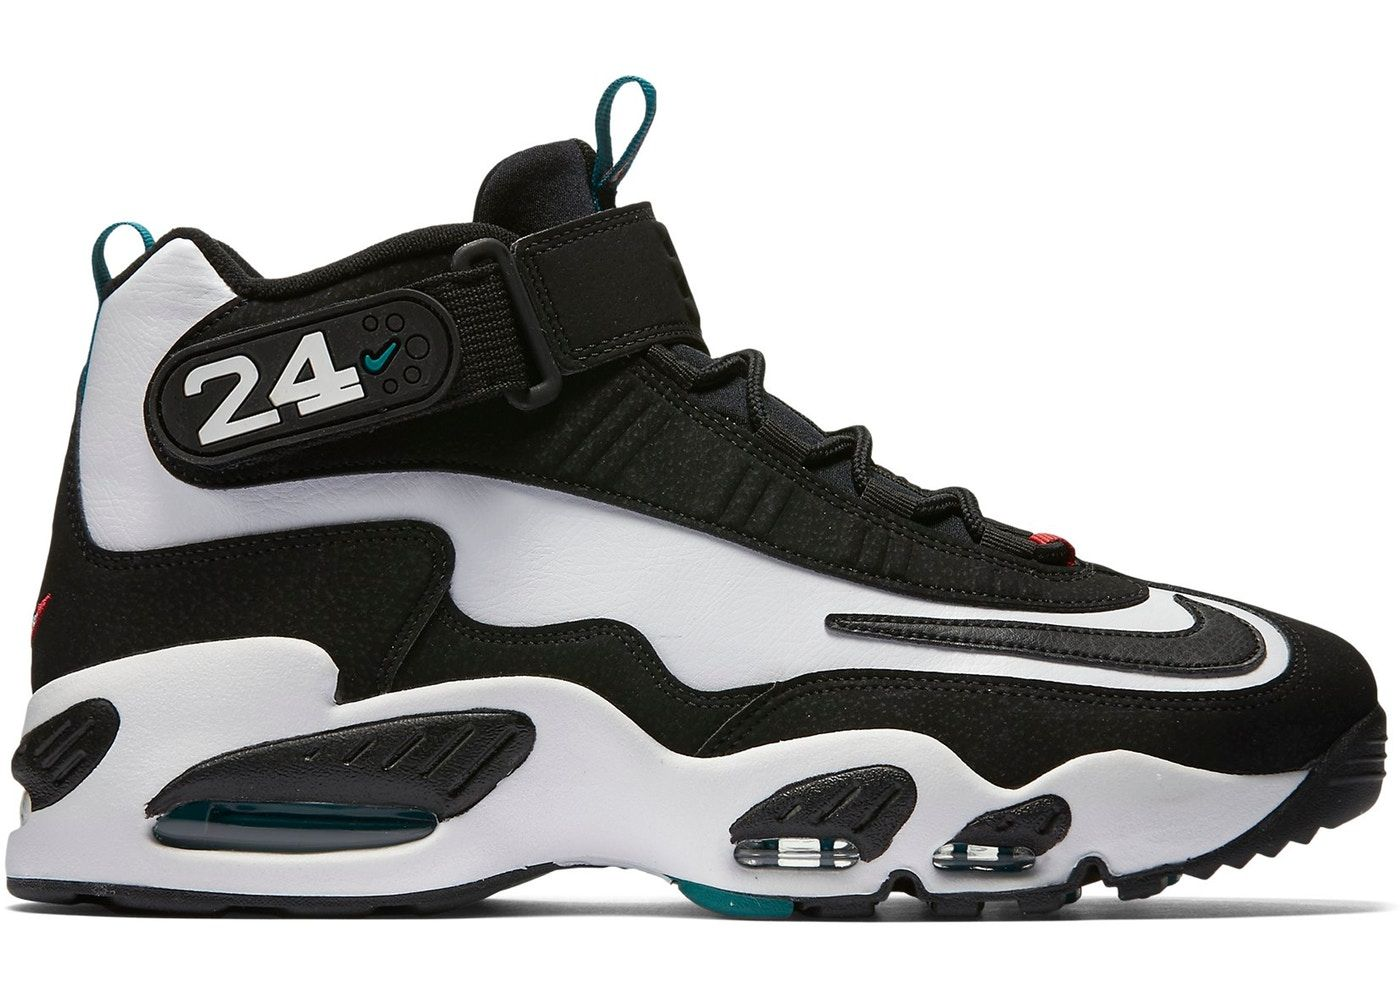 Nike Air Griffey Max 1 White Freshwater (2016) in 2020